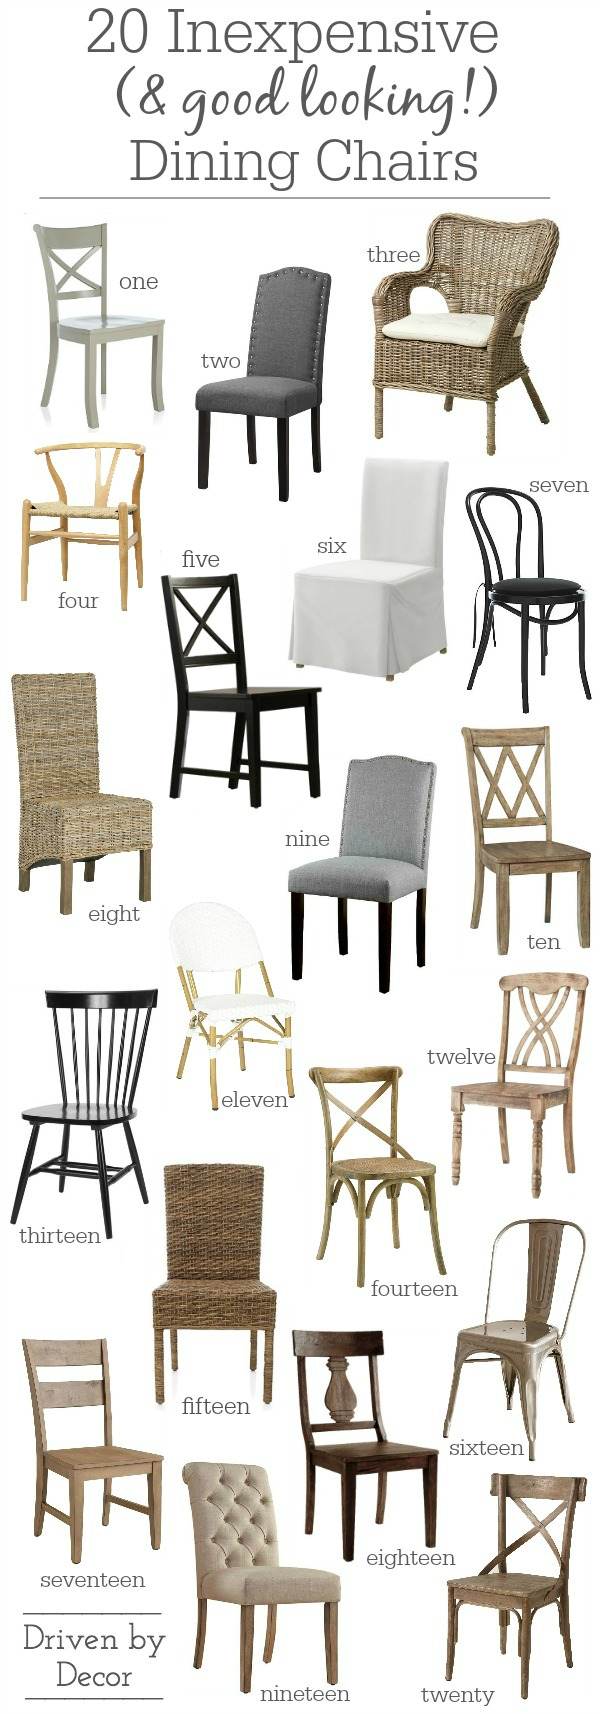 Fabulous Round Up Of Inexpensive But Stylish Dining Side Chairs!